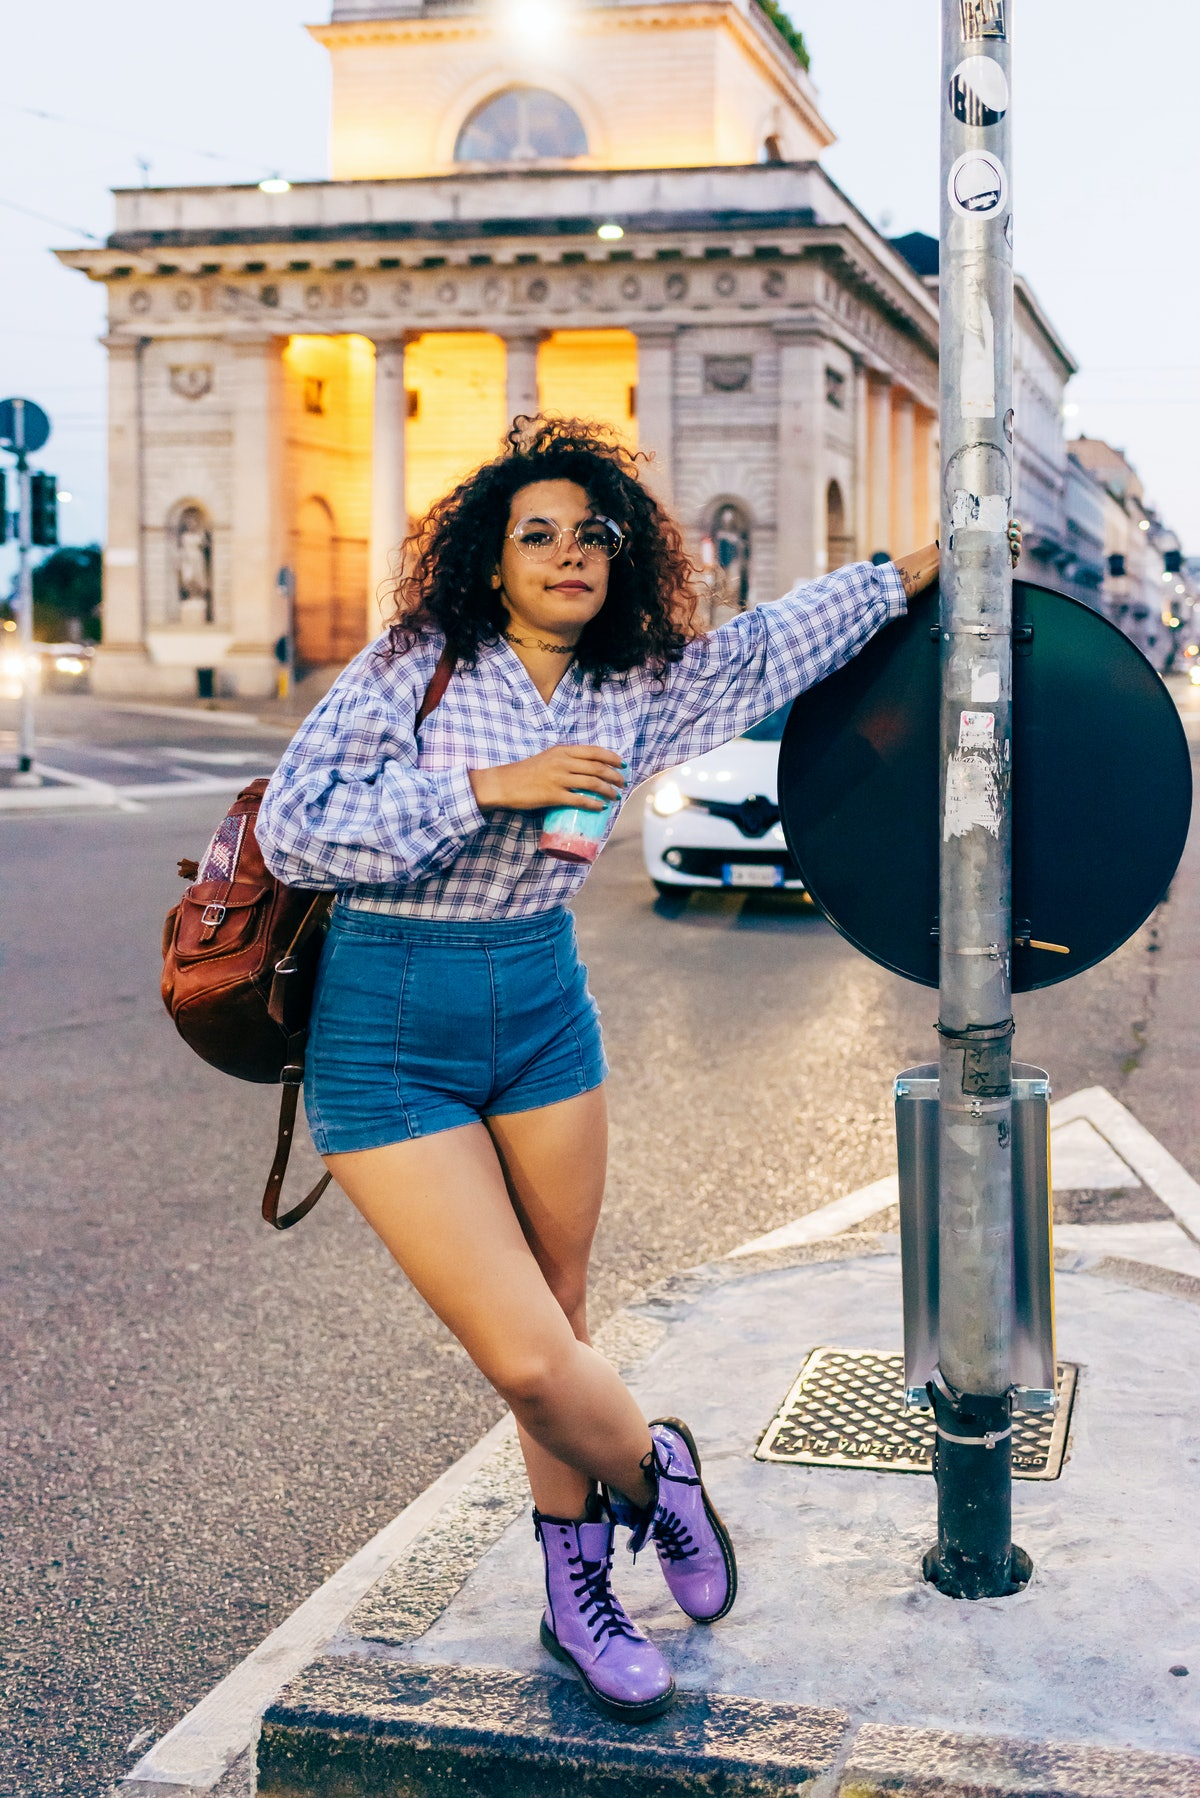 A woman poses for a travel photo that she can later share in a photo dump on Instagram with a vacati...